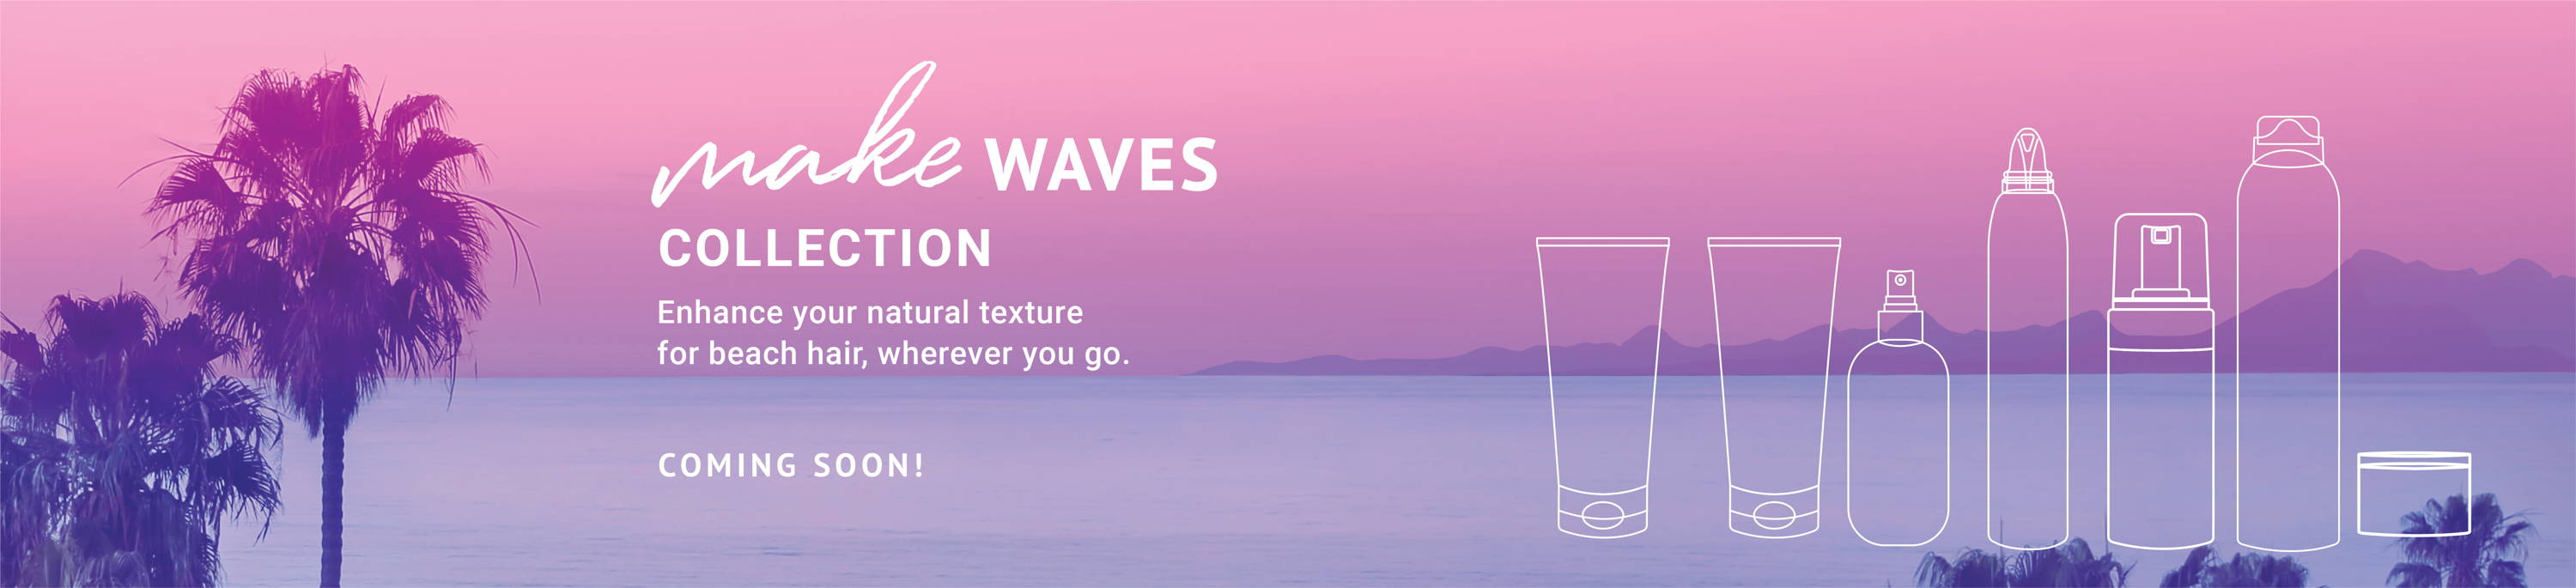 Make Waves Collection - Enhance your natural texture for beach hair wherever you go. Coming soon. Sign up to be notified when the Make Waves Collection is available to purchase.